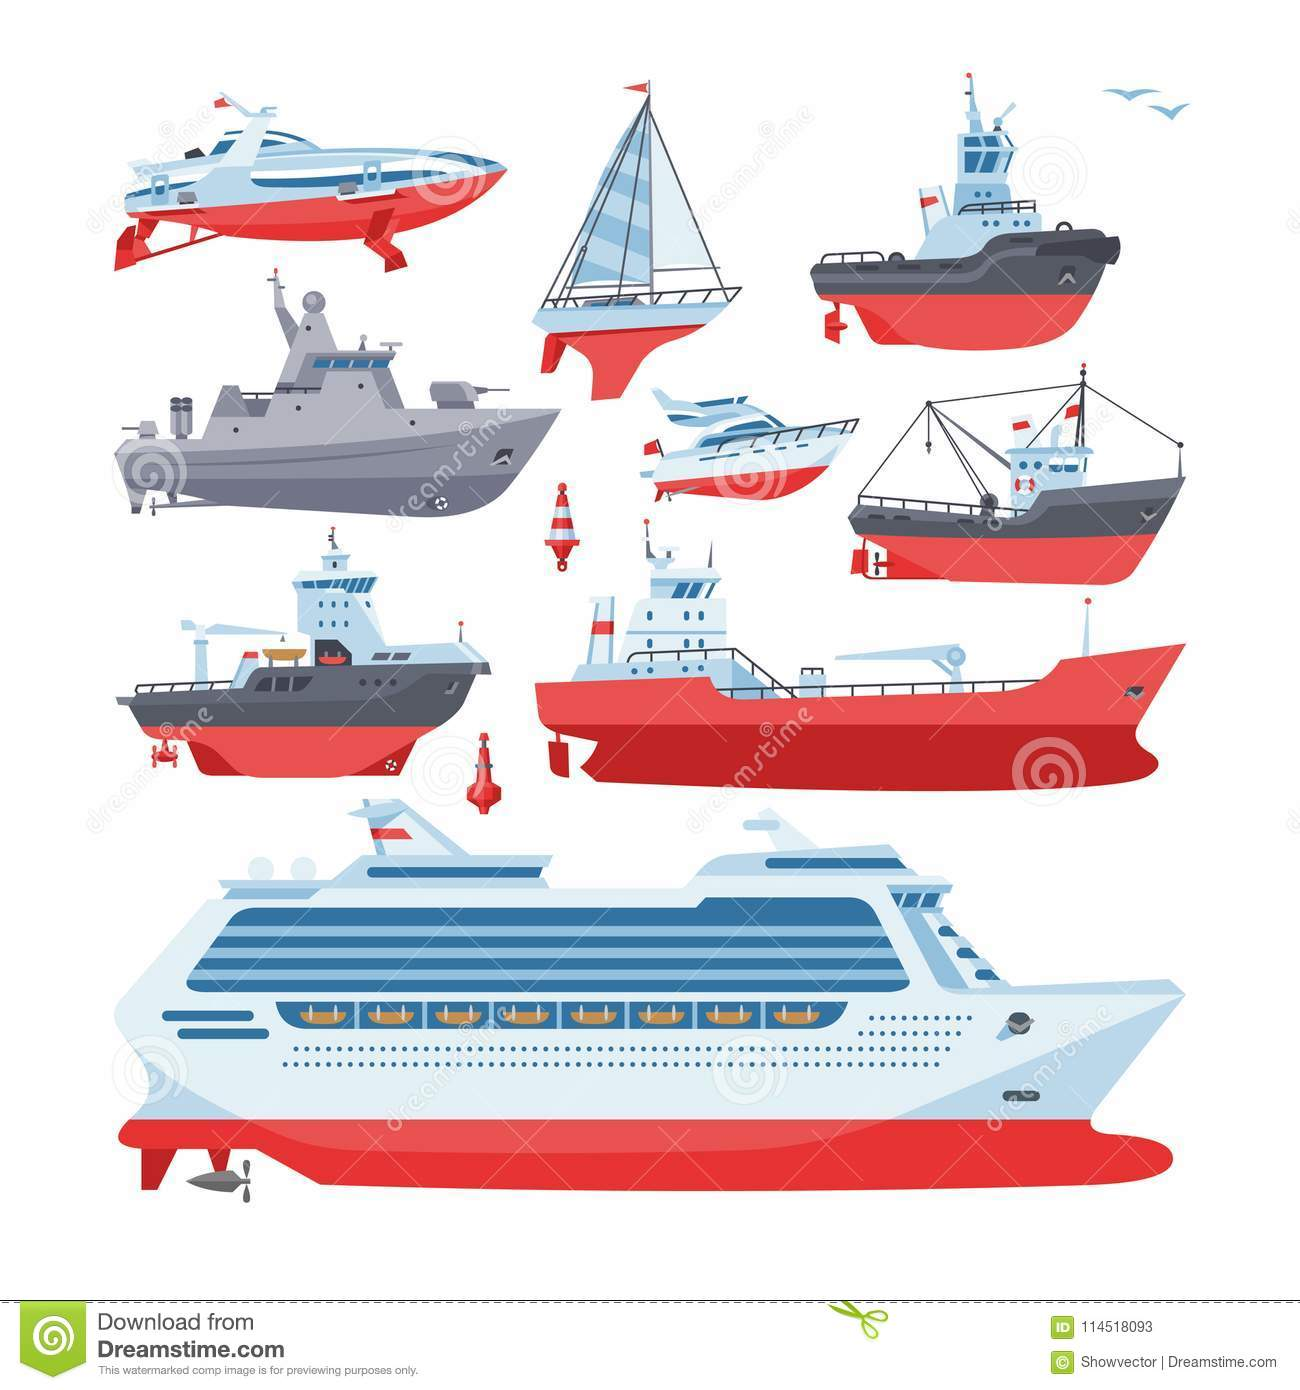 Boats adapted to the open sea for coastal shipping High quality JPG,300dpi.instant download Sea ship silhouettes SVG trade and travelling